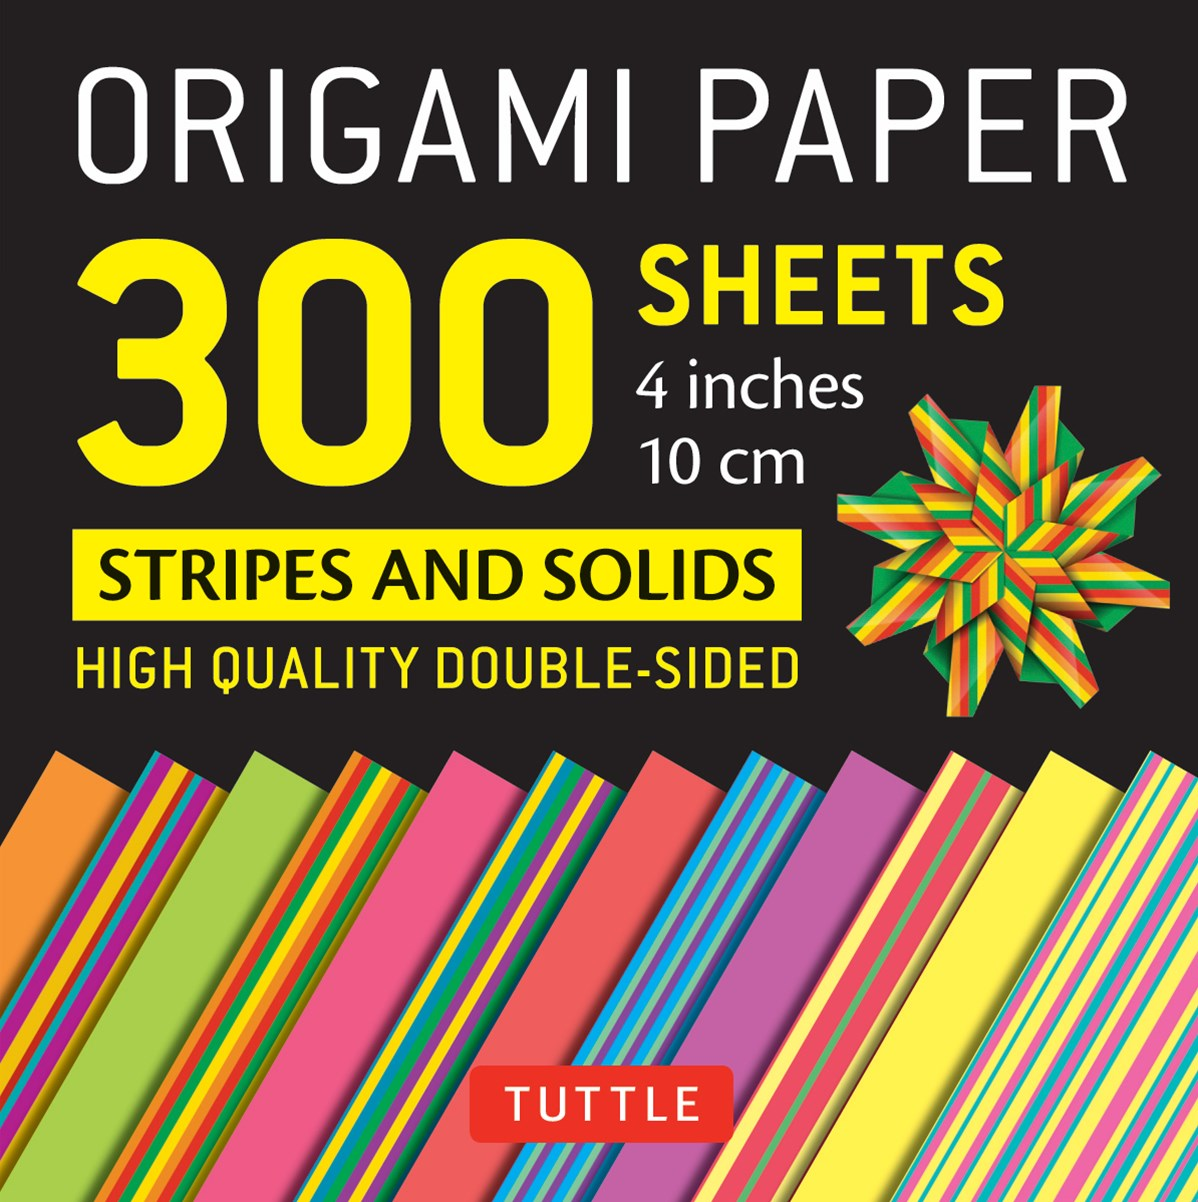 Origami Paper Stripes and Solids